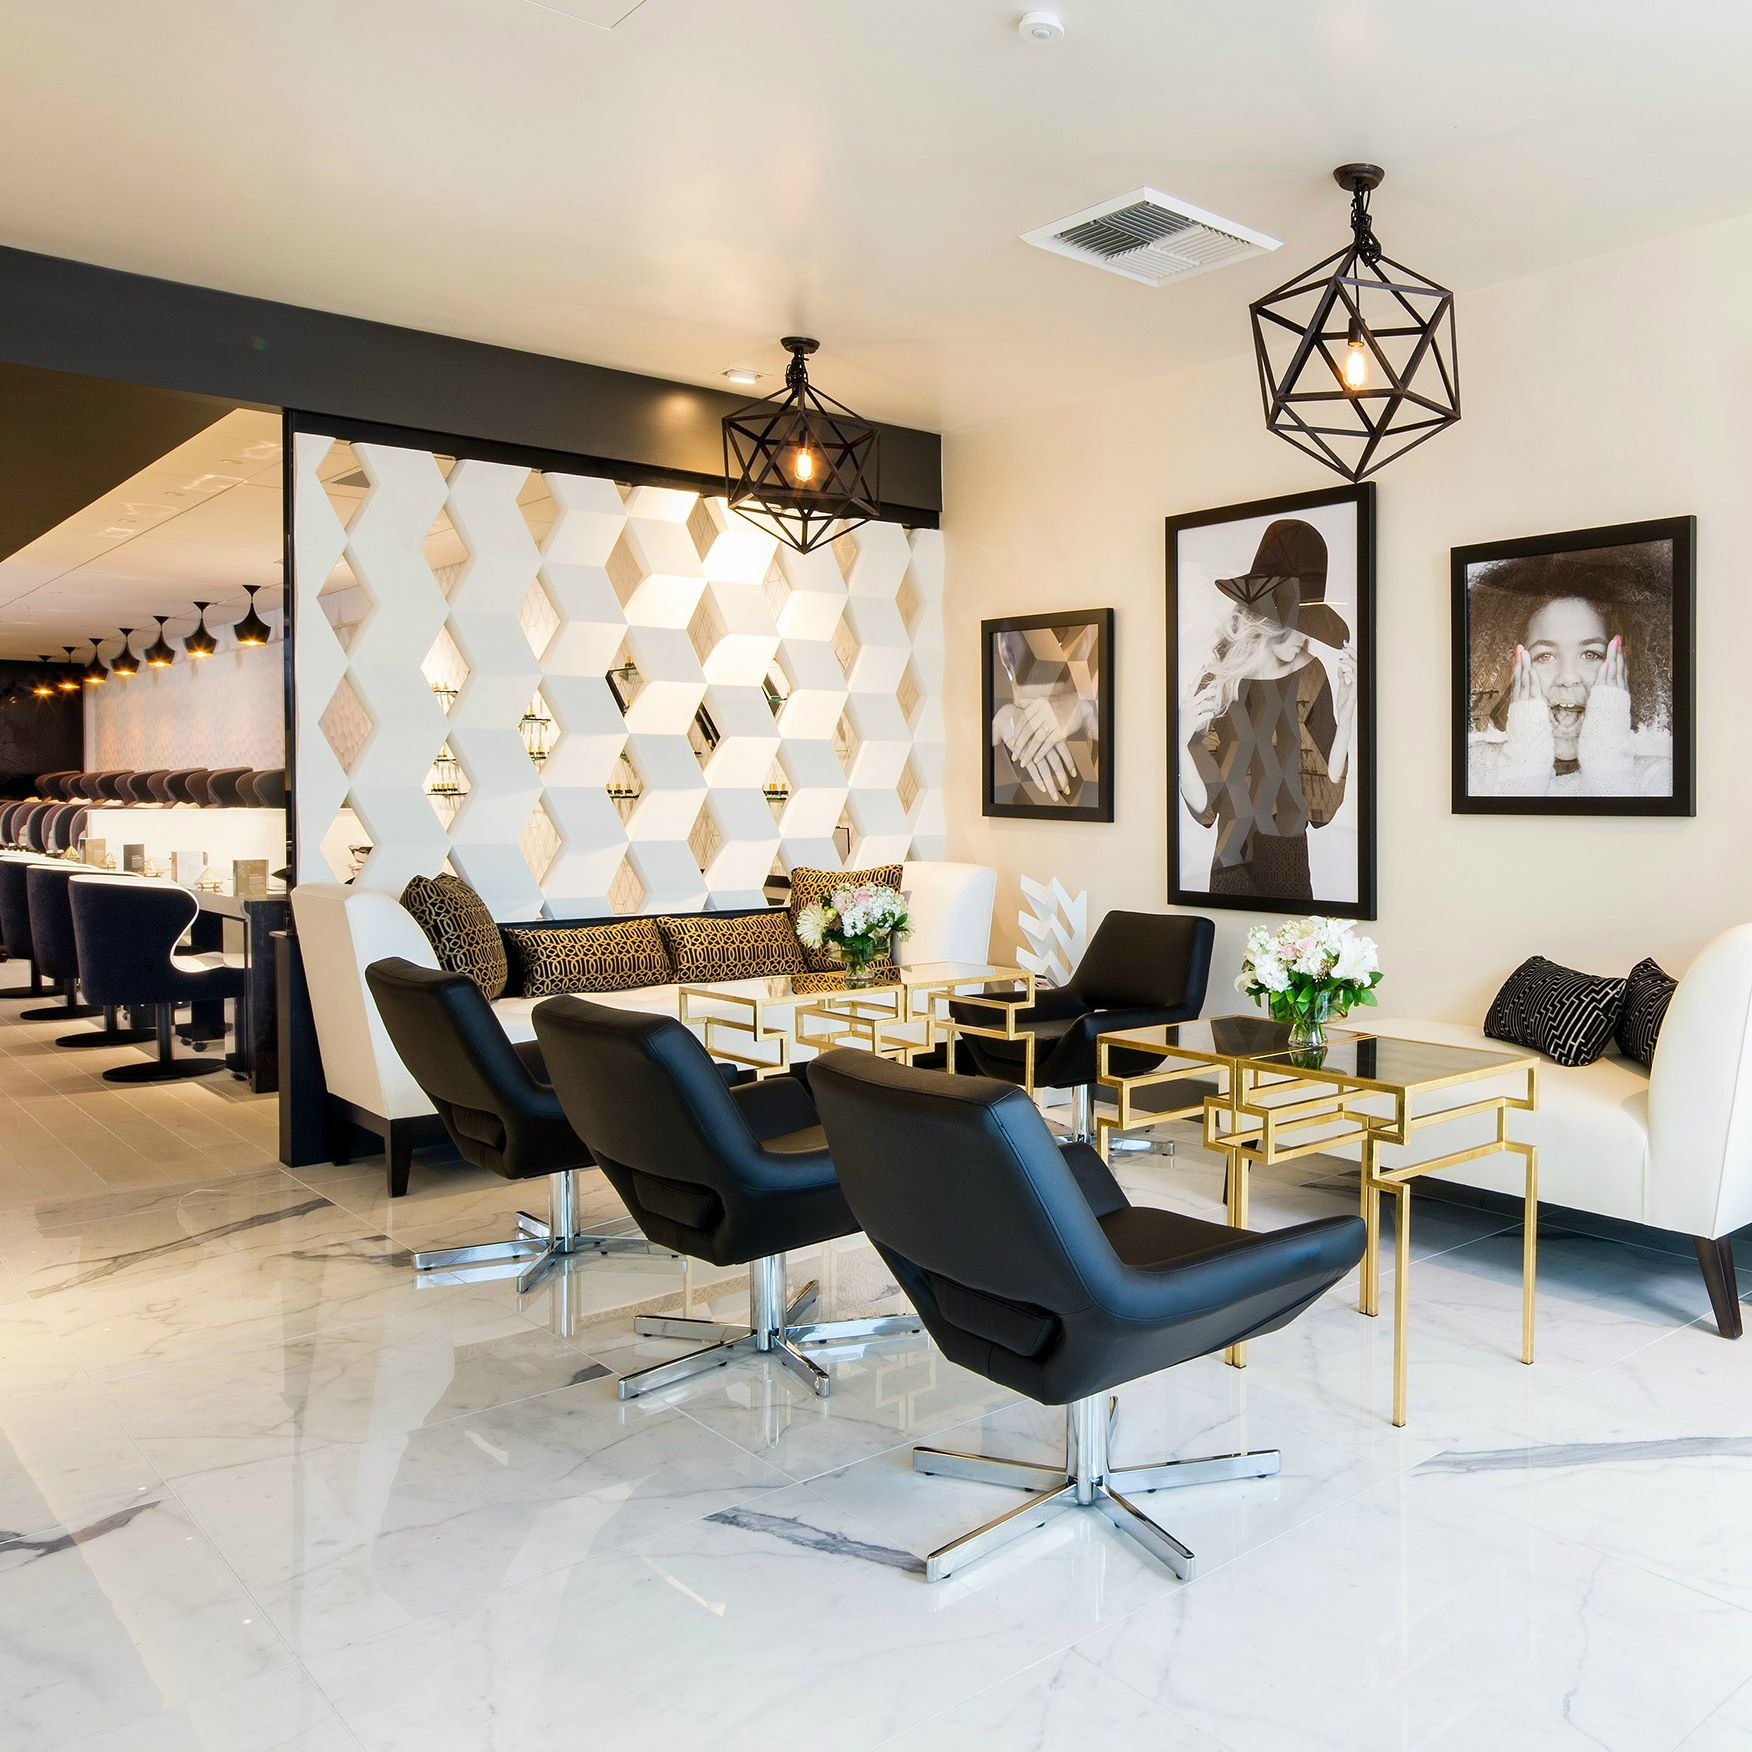 Salon Inspiration Studio Lounge Salon Interior Inspiration In 2018